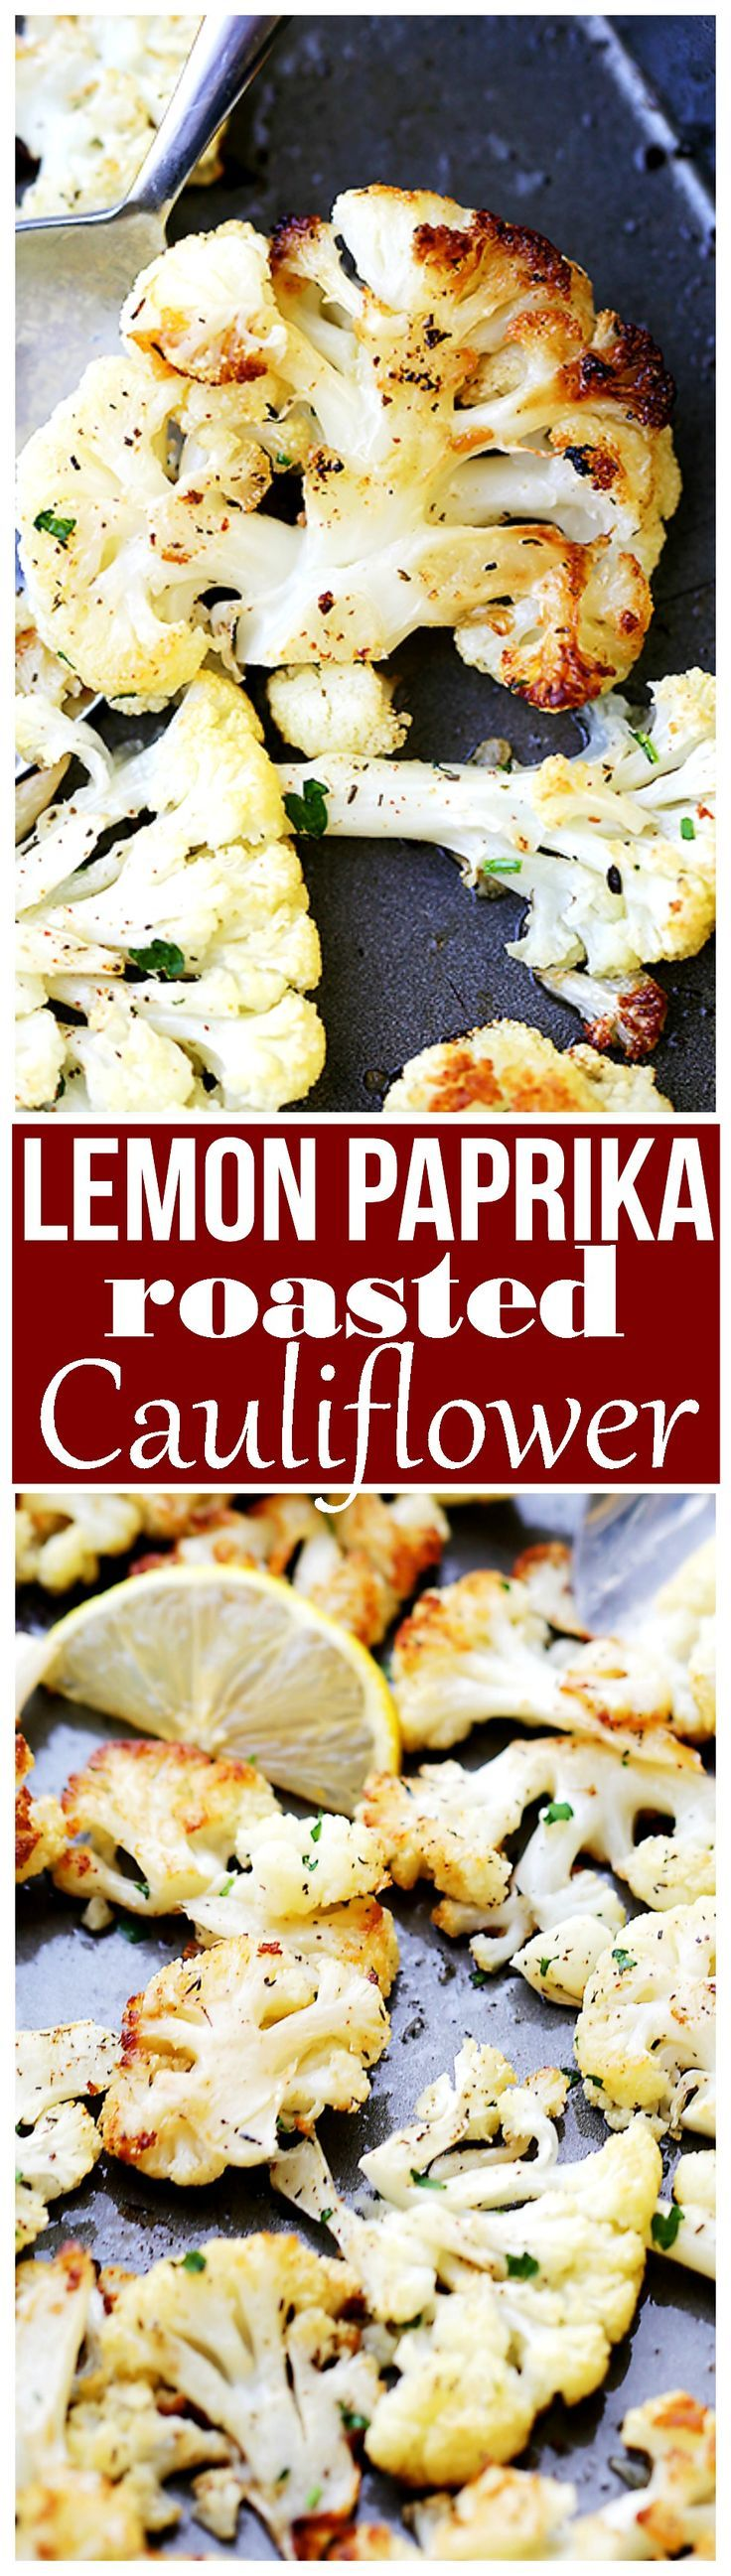 Lemon Paprika Roasted Cauliflower Recipe - Tender roasted cauliflower tossed in olive oil, seasoned with a delicious lemon-paprika mixture, and roasted to a perfect golden brown.: